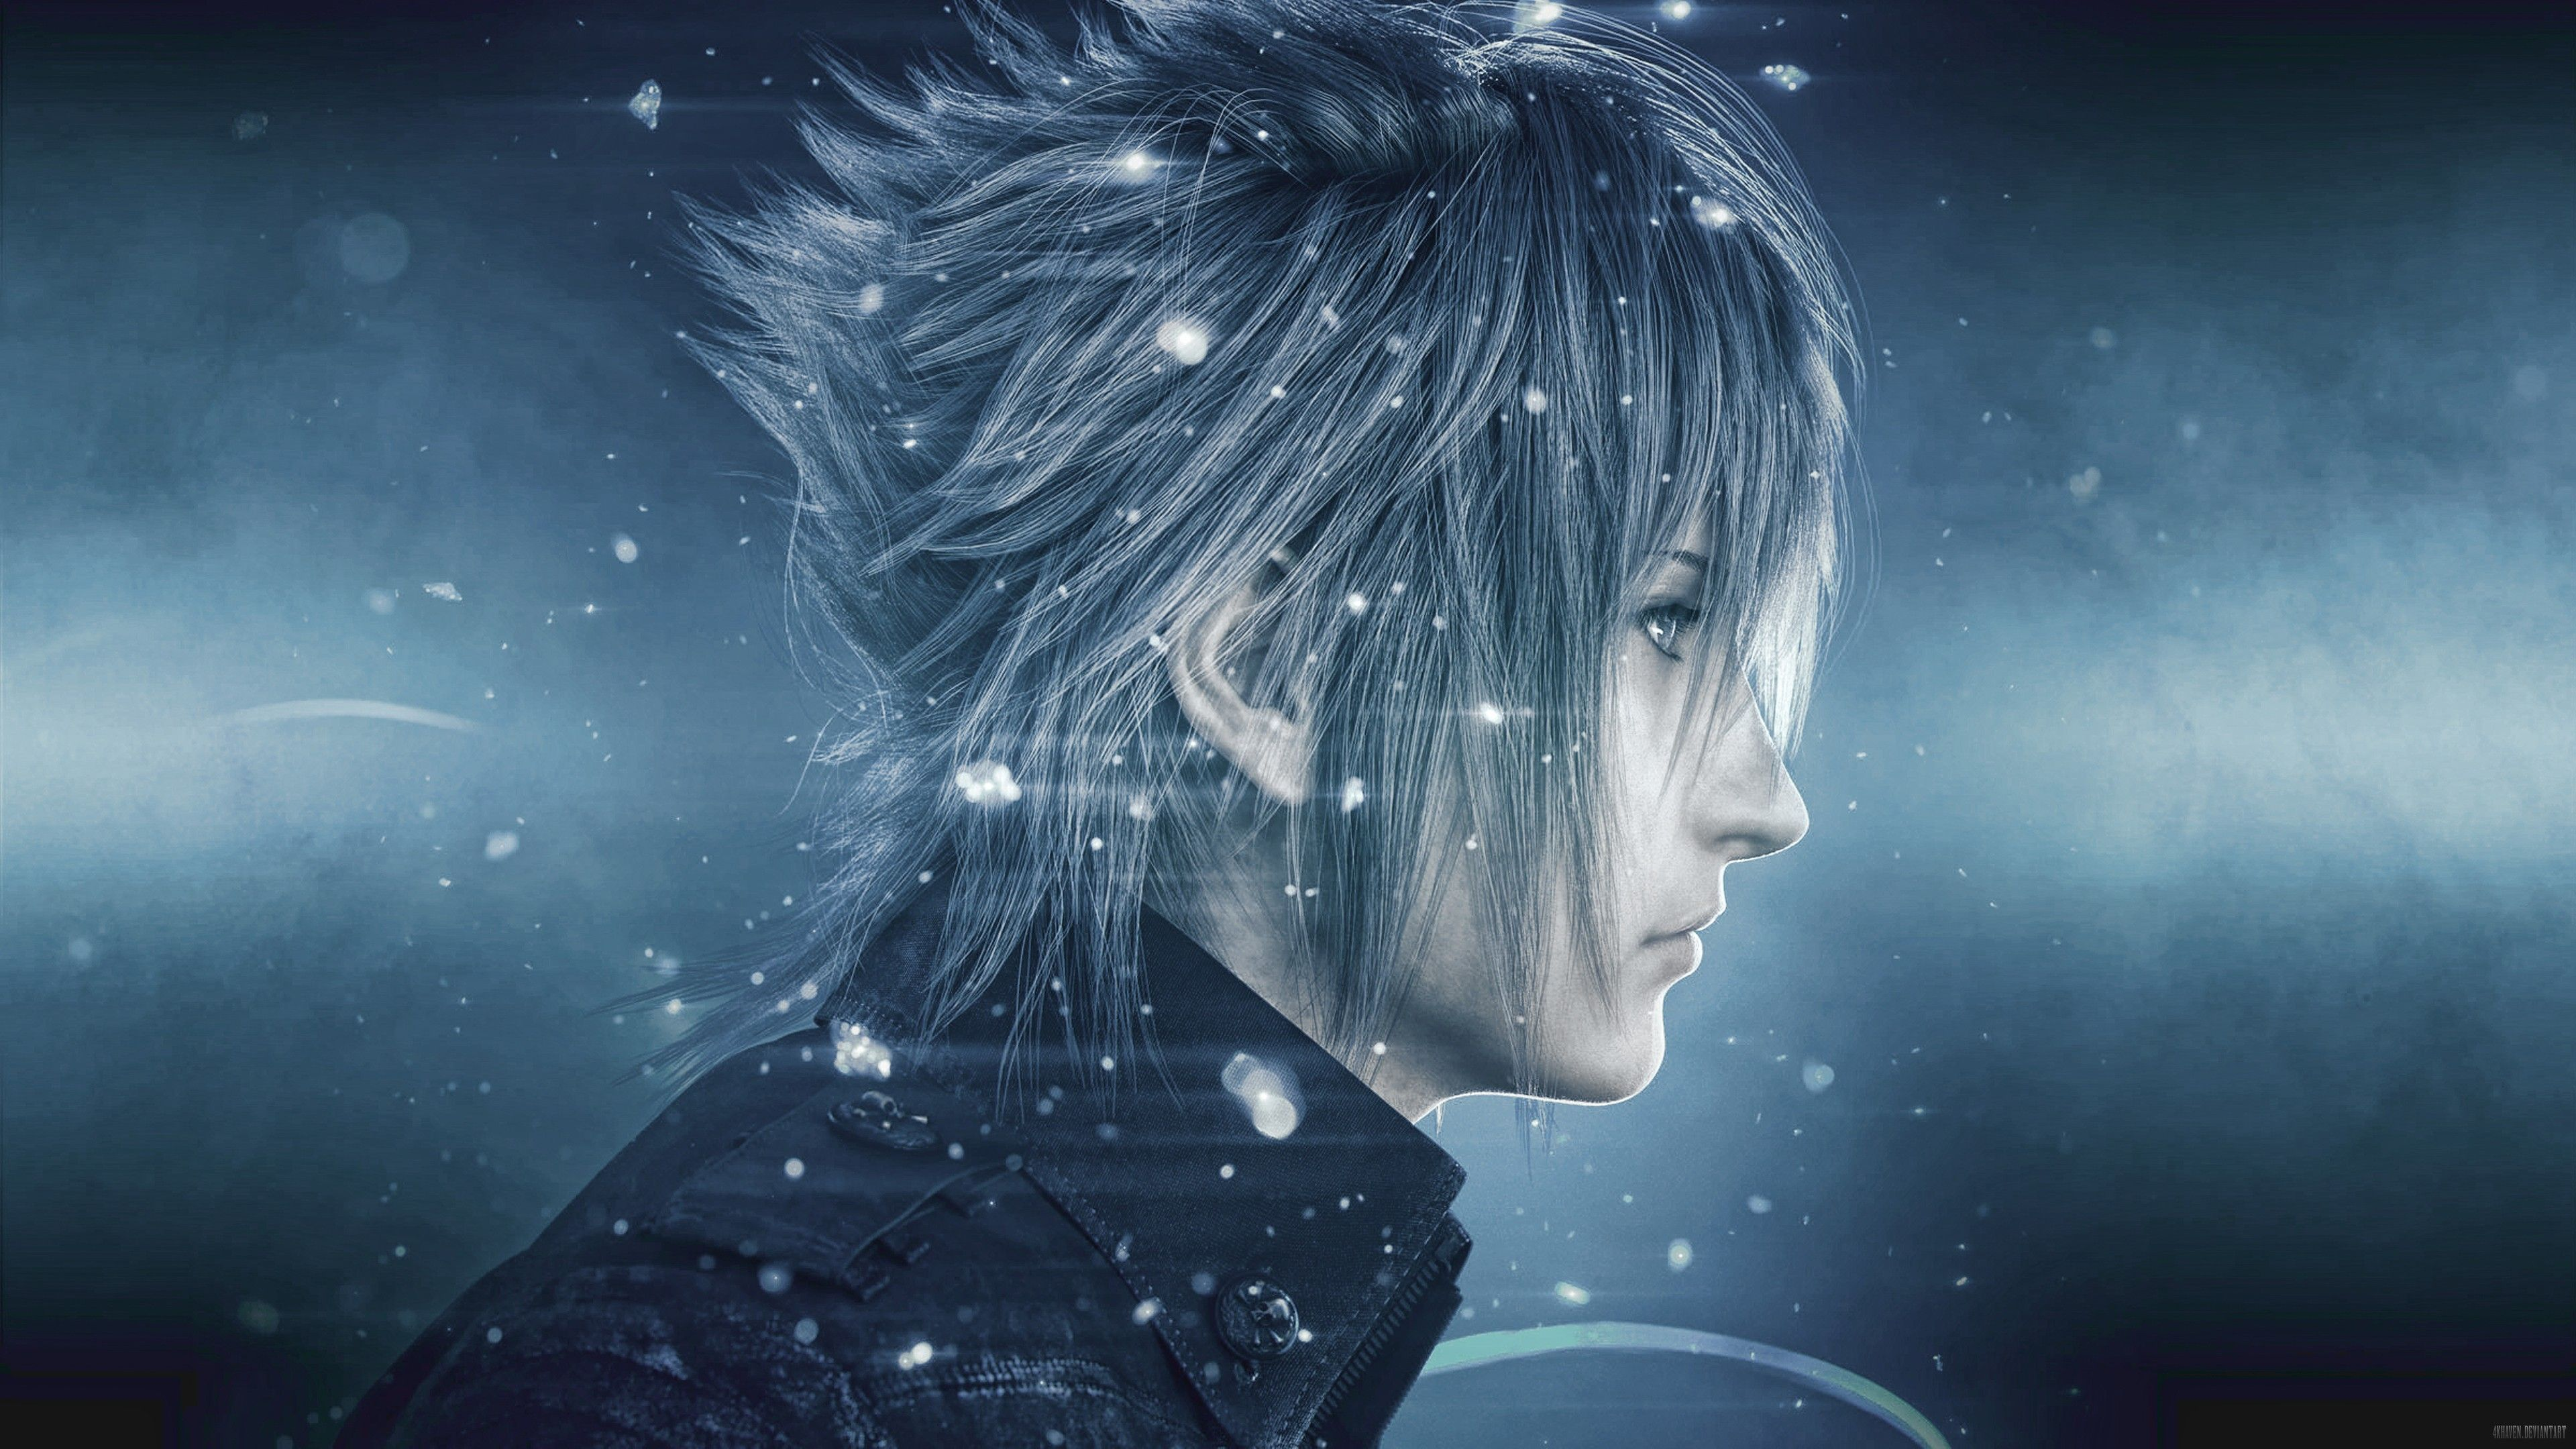 Final Fantasy Xv Wallpaper 78 Images: Final Fantasy XV Noctis, HD Games, 4k Wallpapers, Images